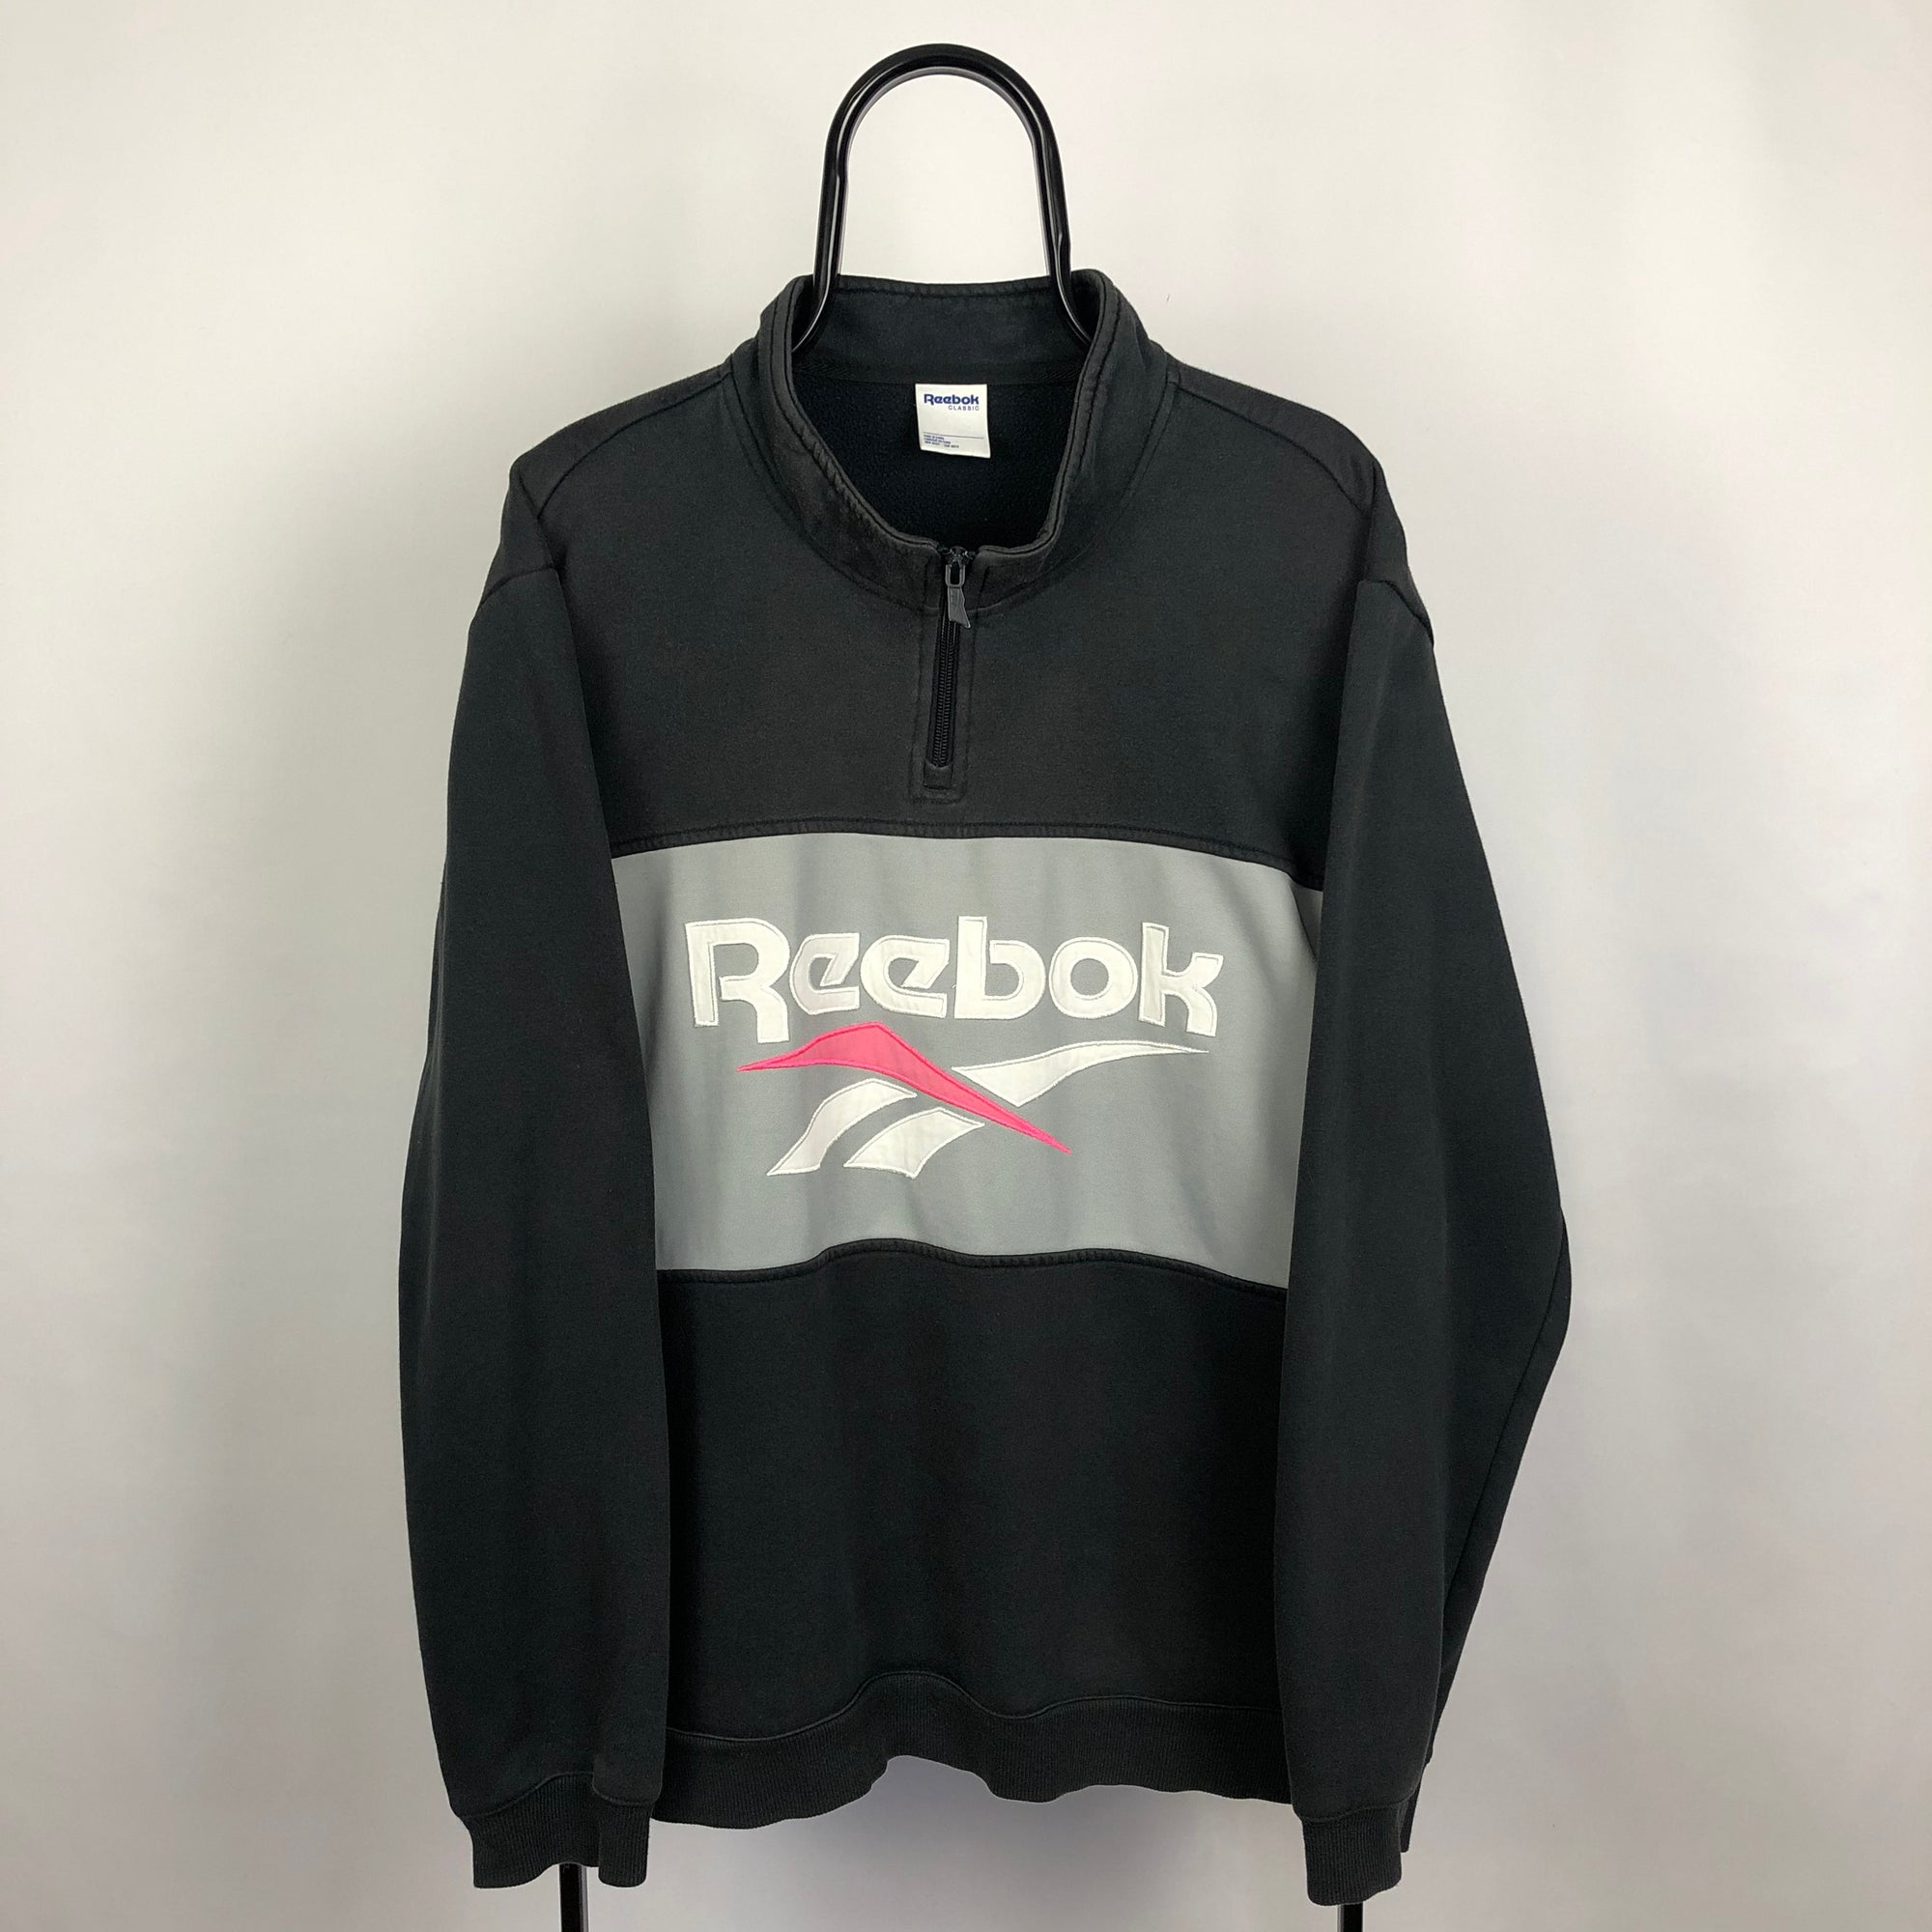 Reebok Spellout 1/4 Zip Sweatshirt - Men's Large/Women's XL